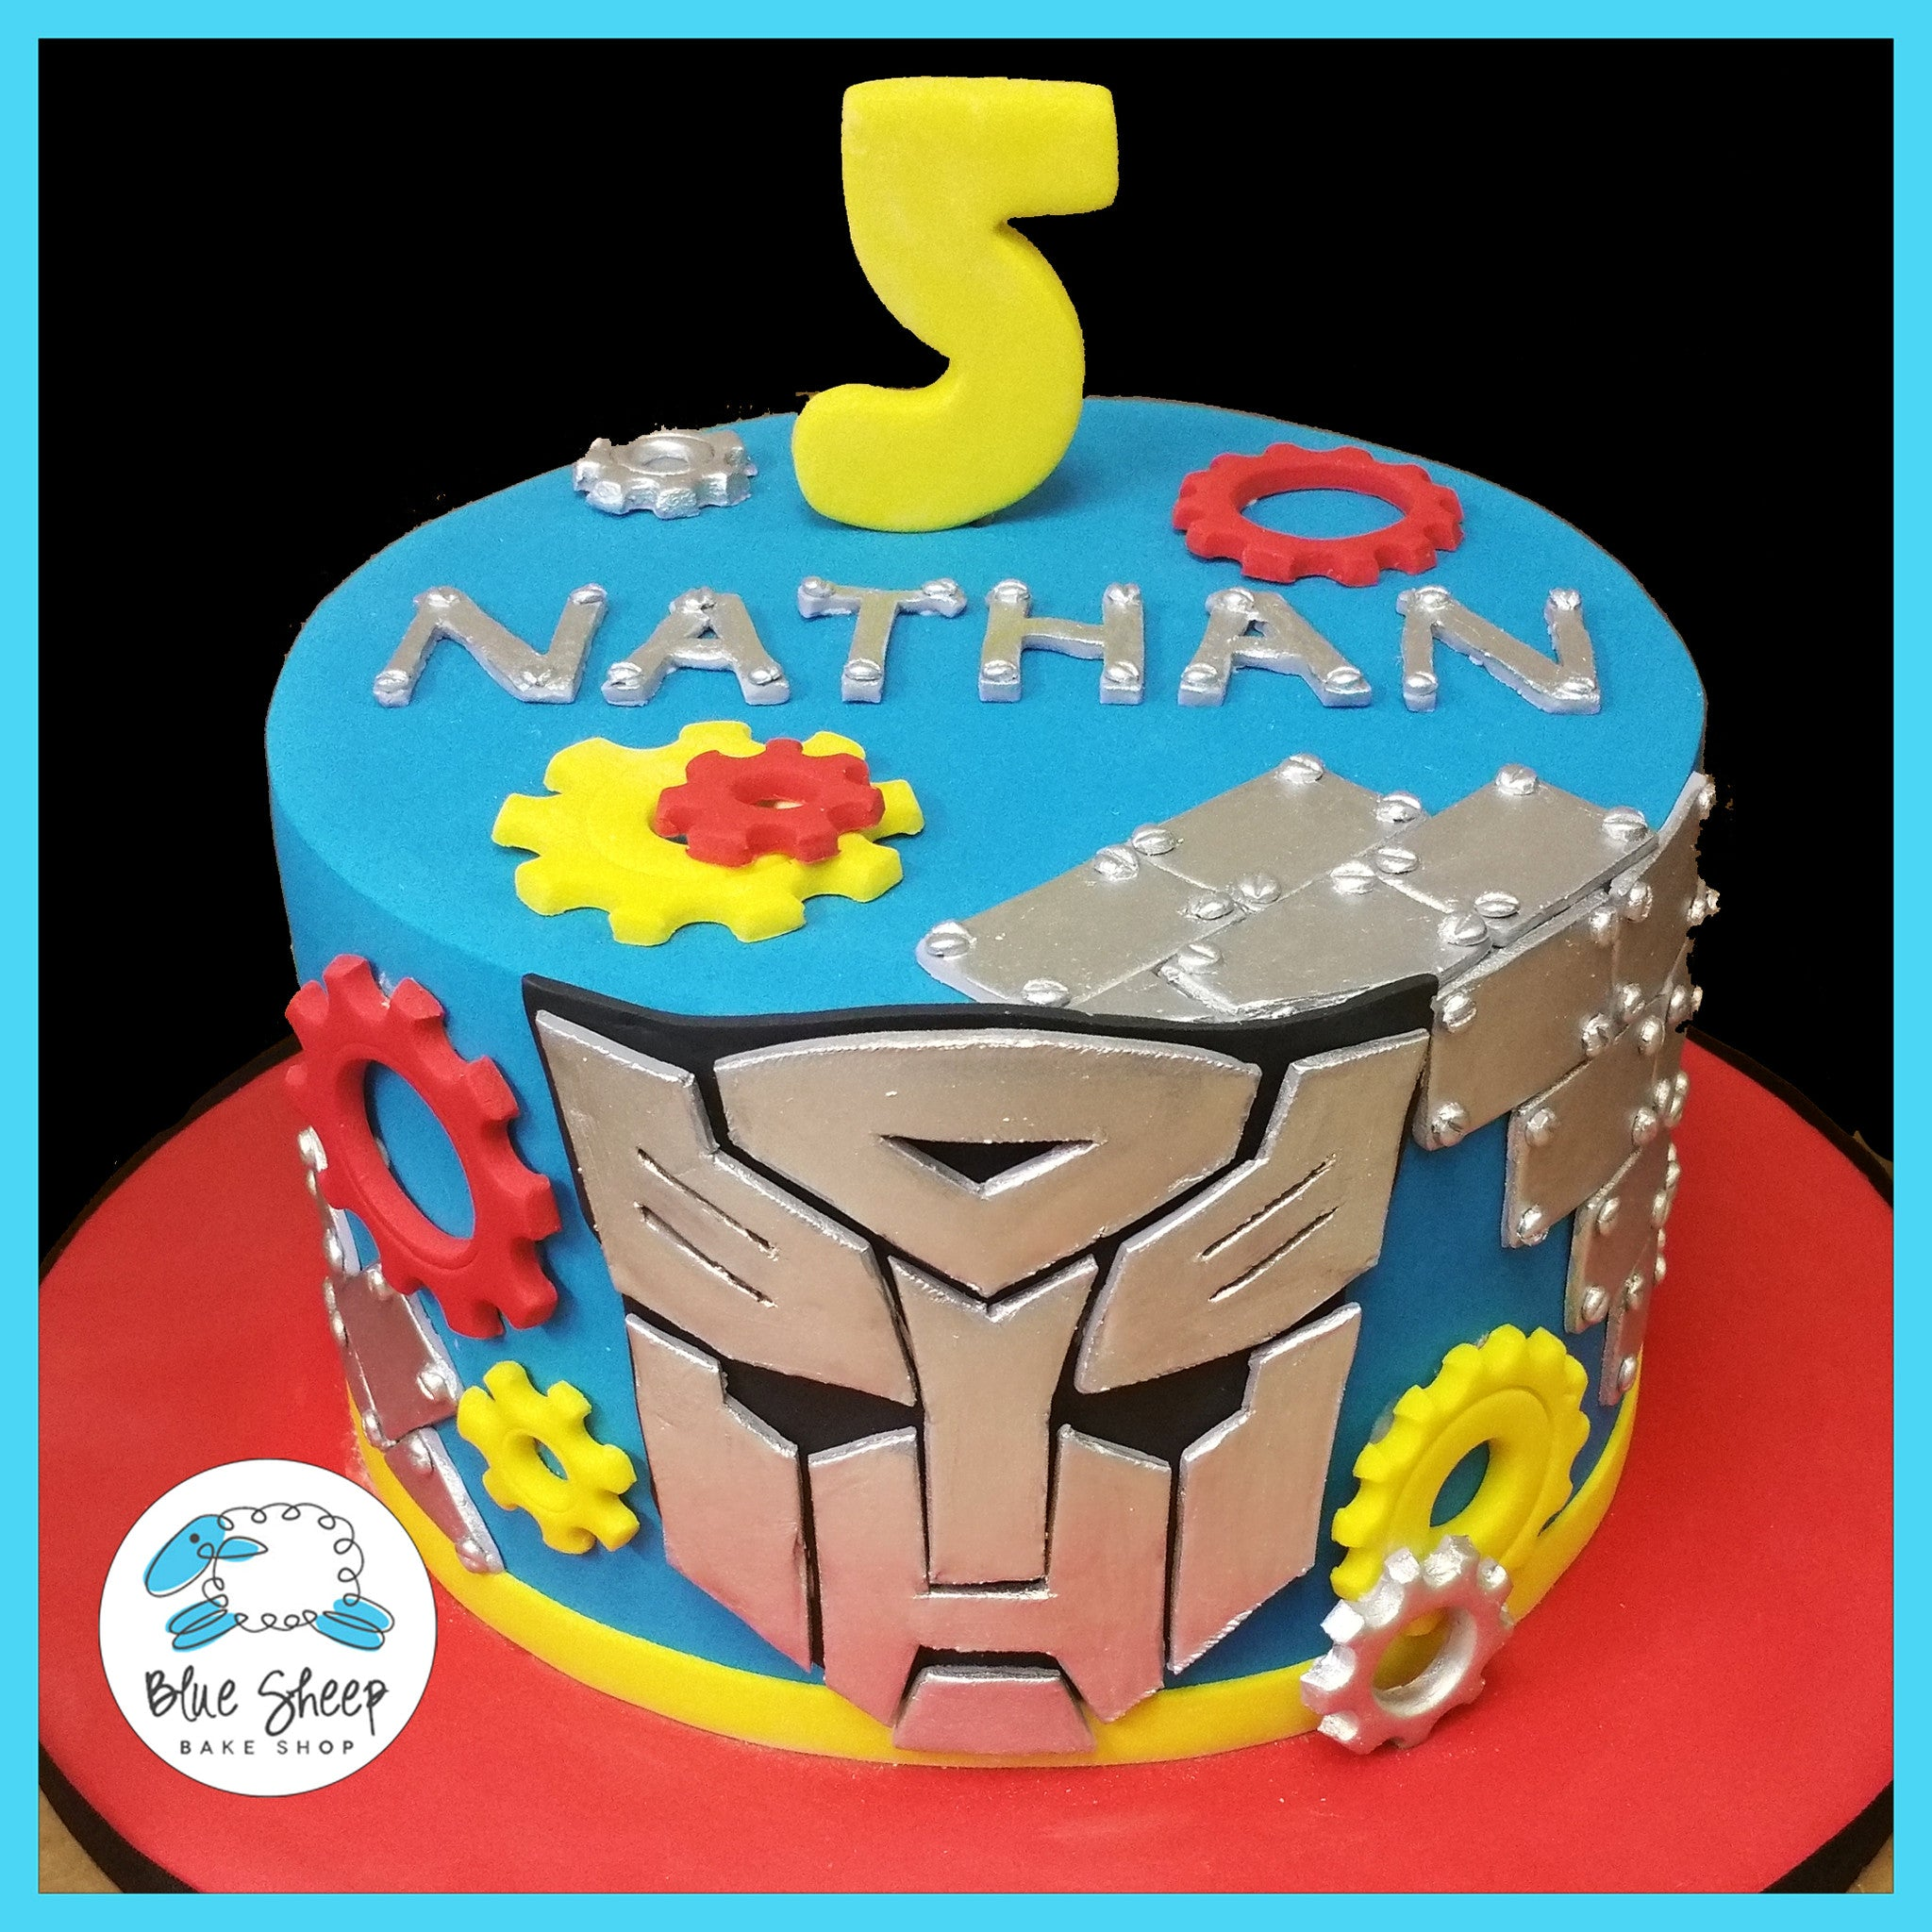 Marvelous Transformers Birthday Cake Blue Sheep Bake Shop Funny Birthday Cards Online Alyptdamsfinfo